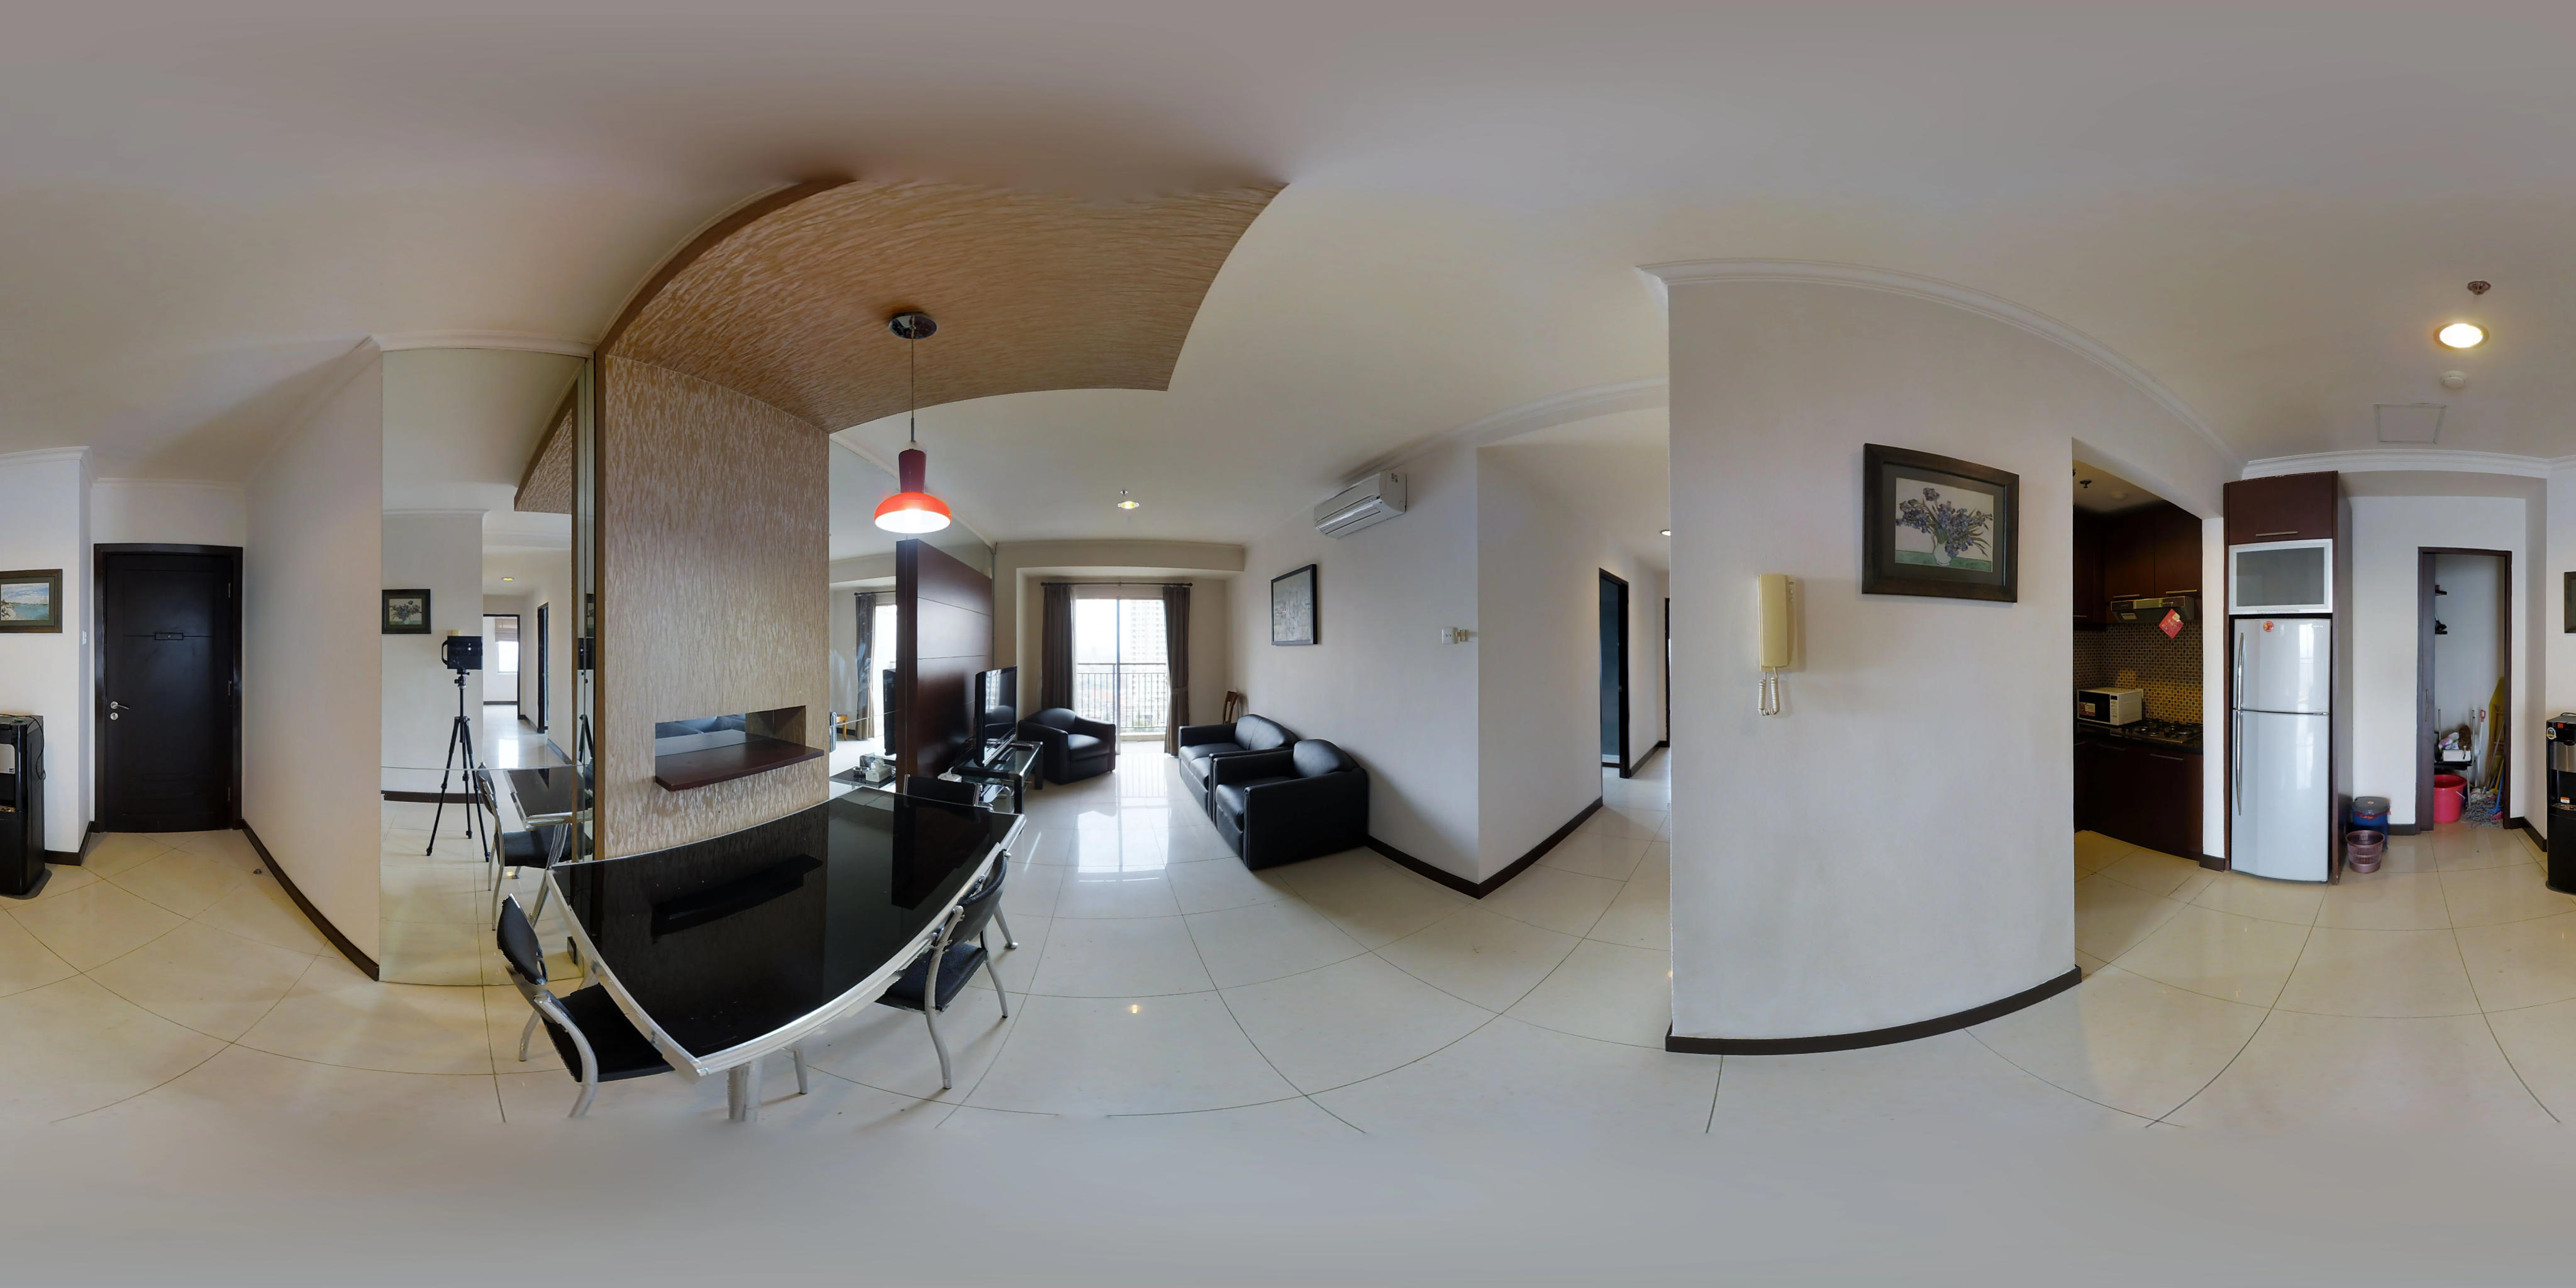 for rent Jakarta Residence - Cosmopolitan living ambience reflected in this large 3 bedroom apartment